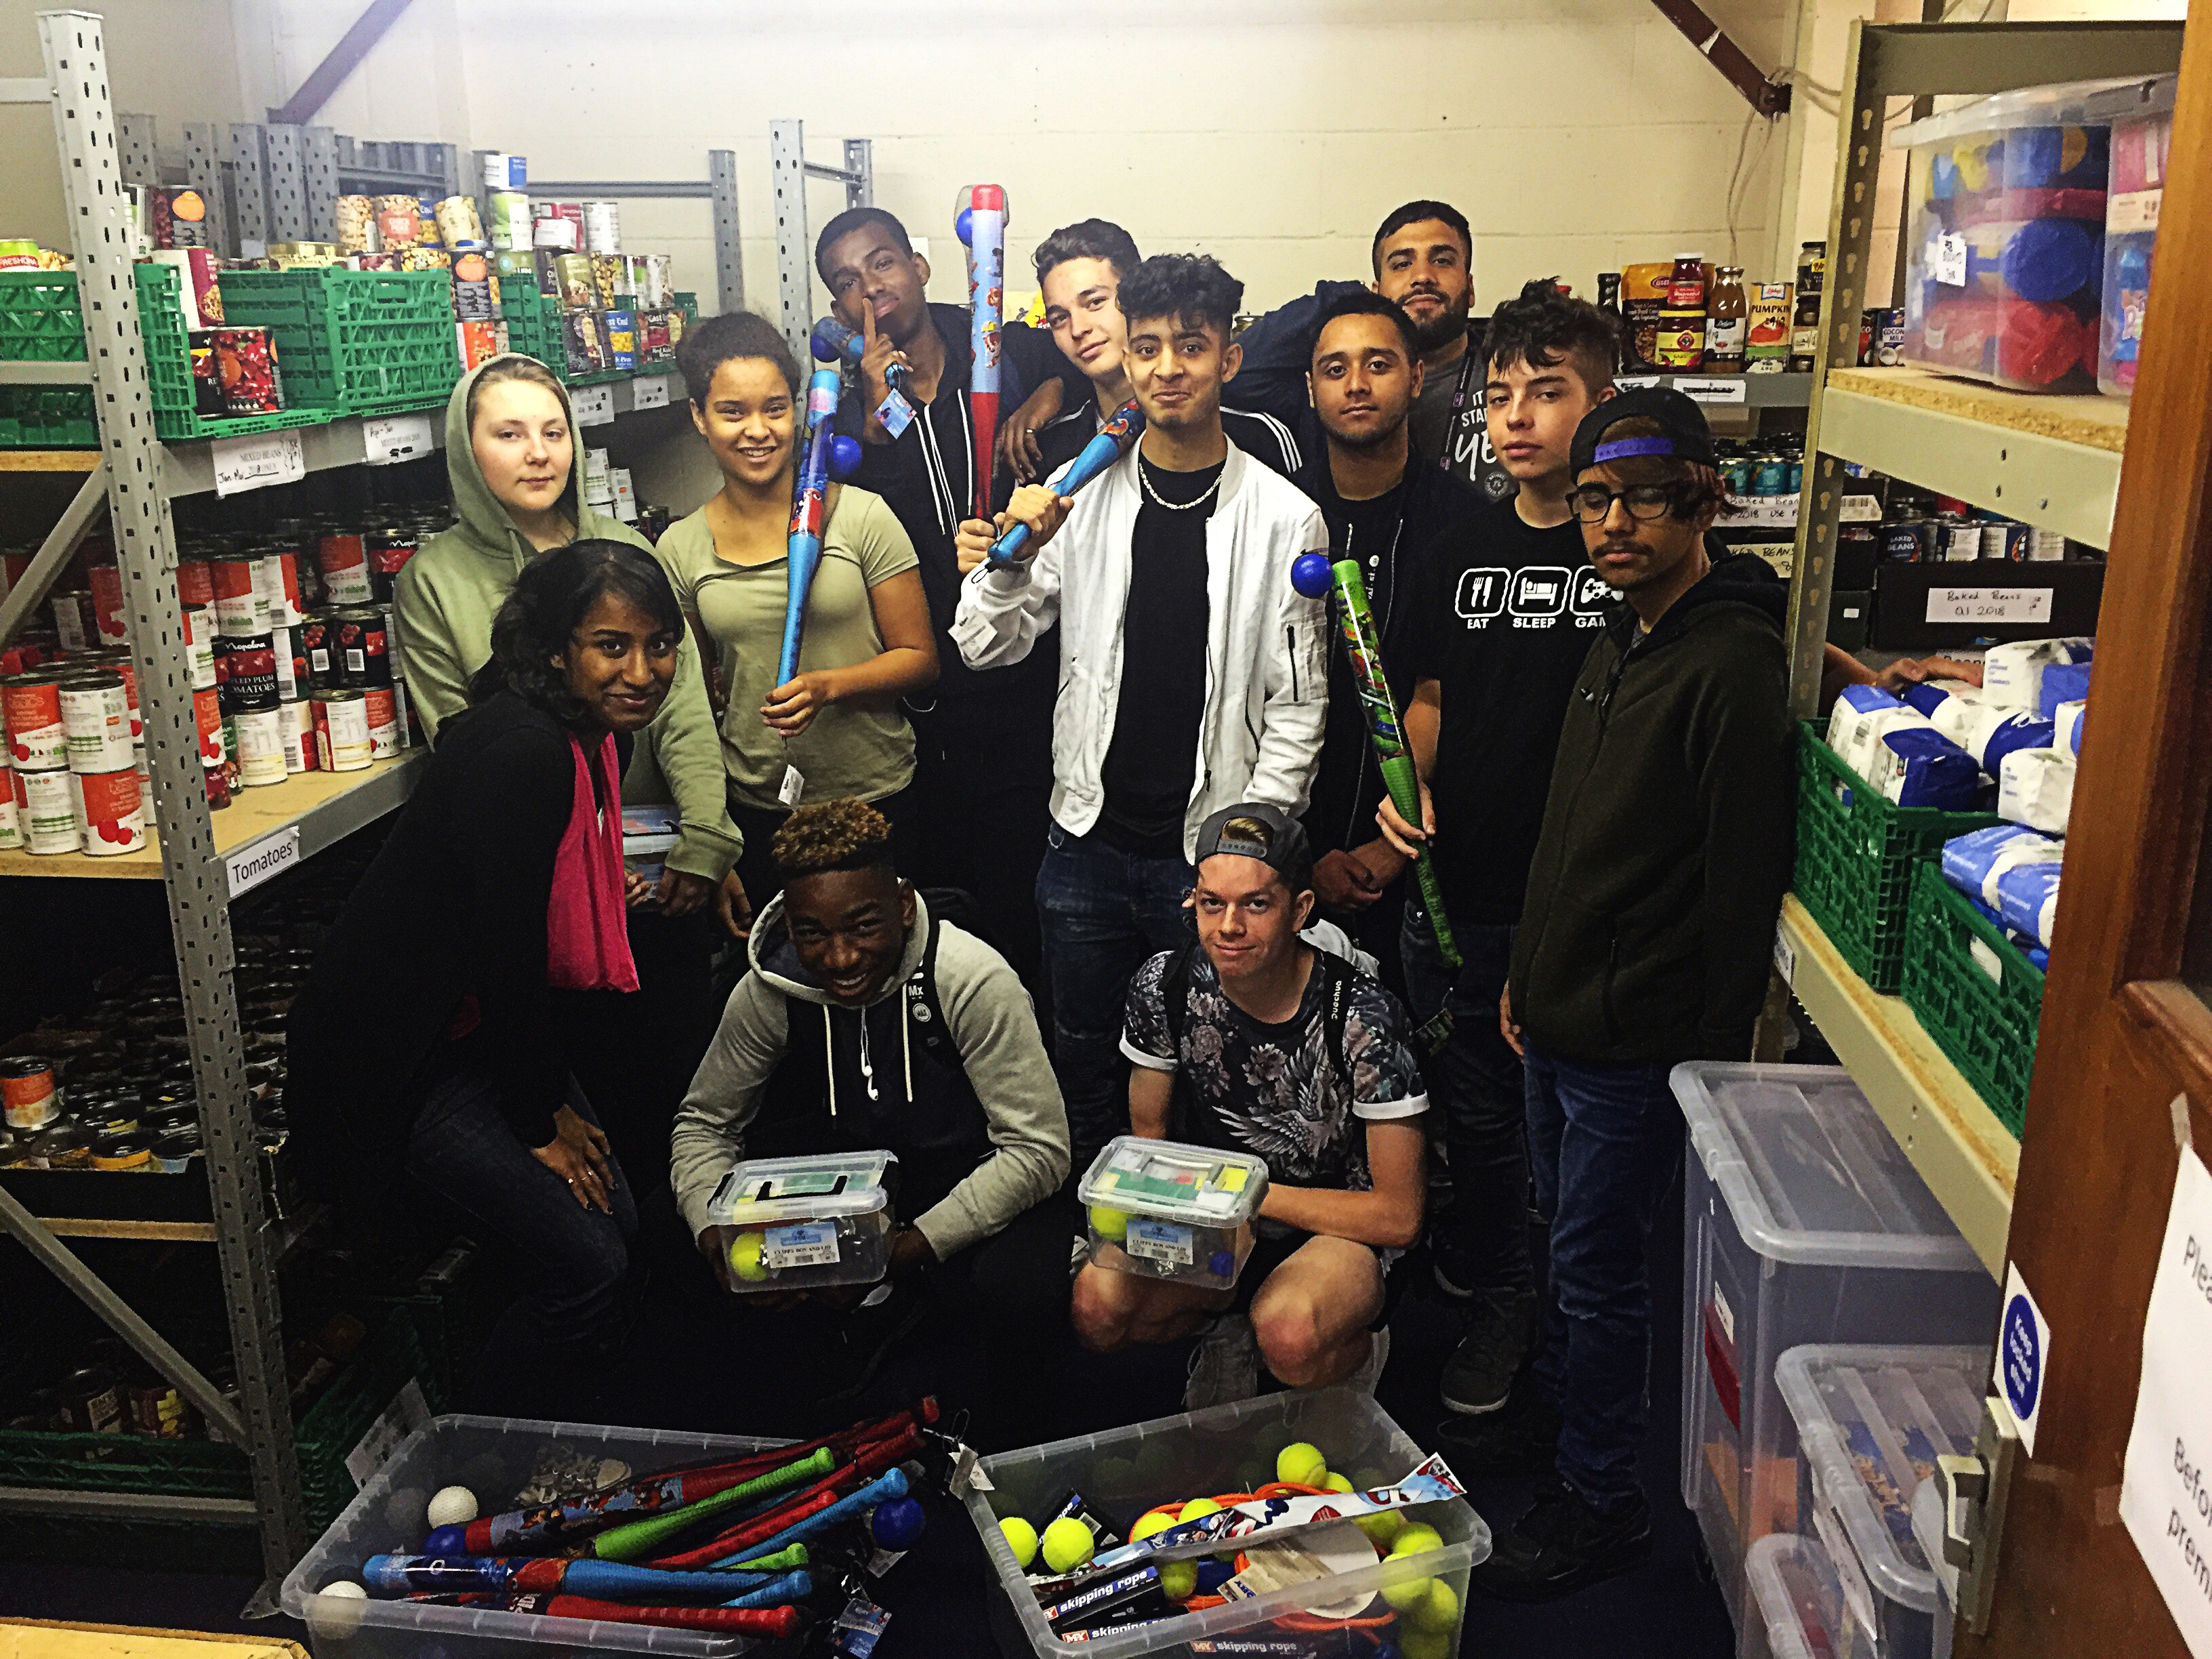 Young people from Watford demonstrate their community spirit during their summer holidays